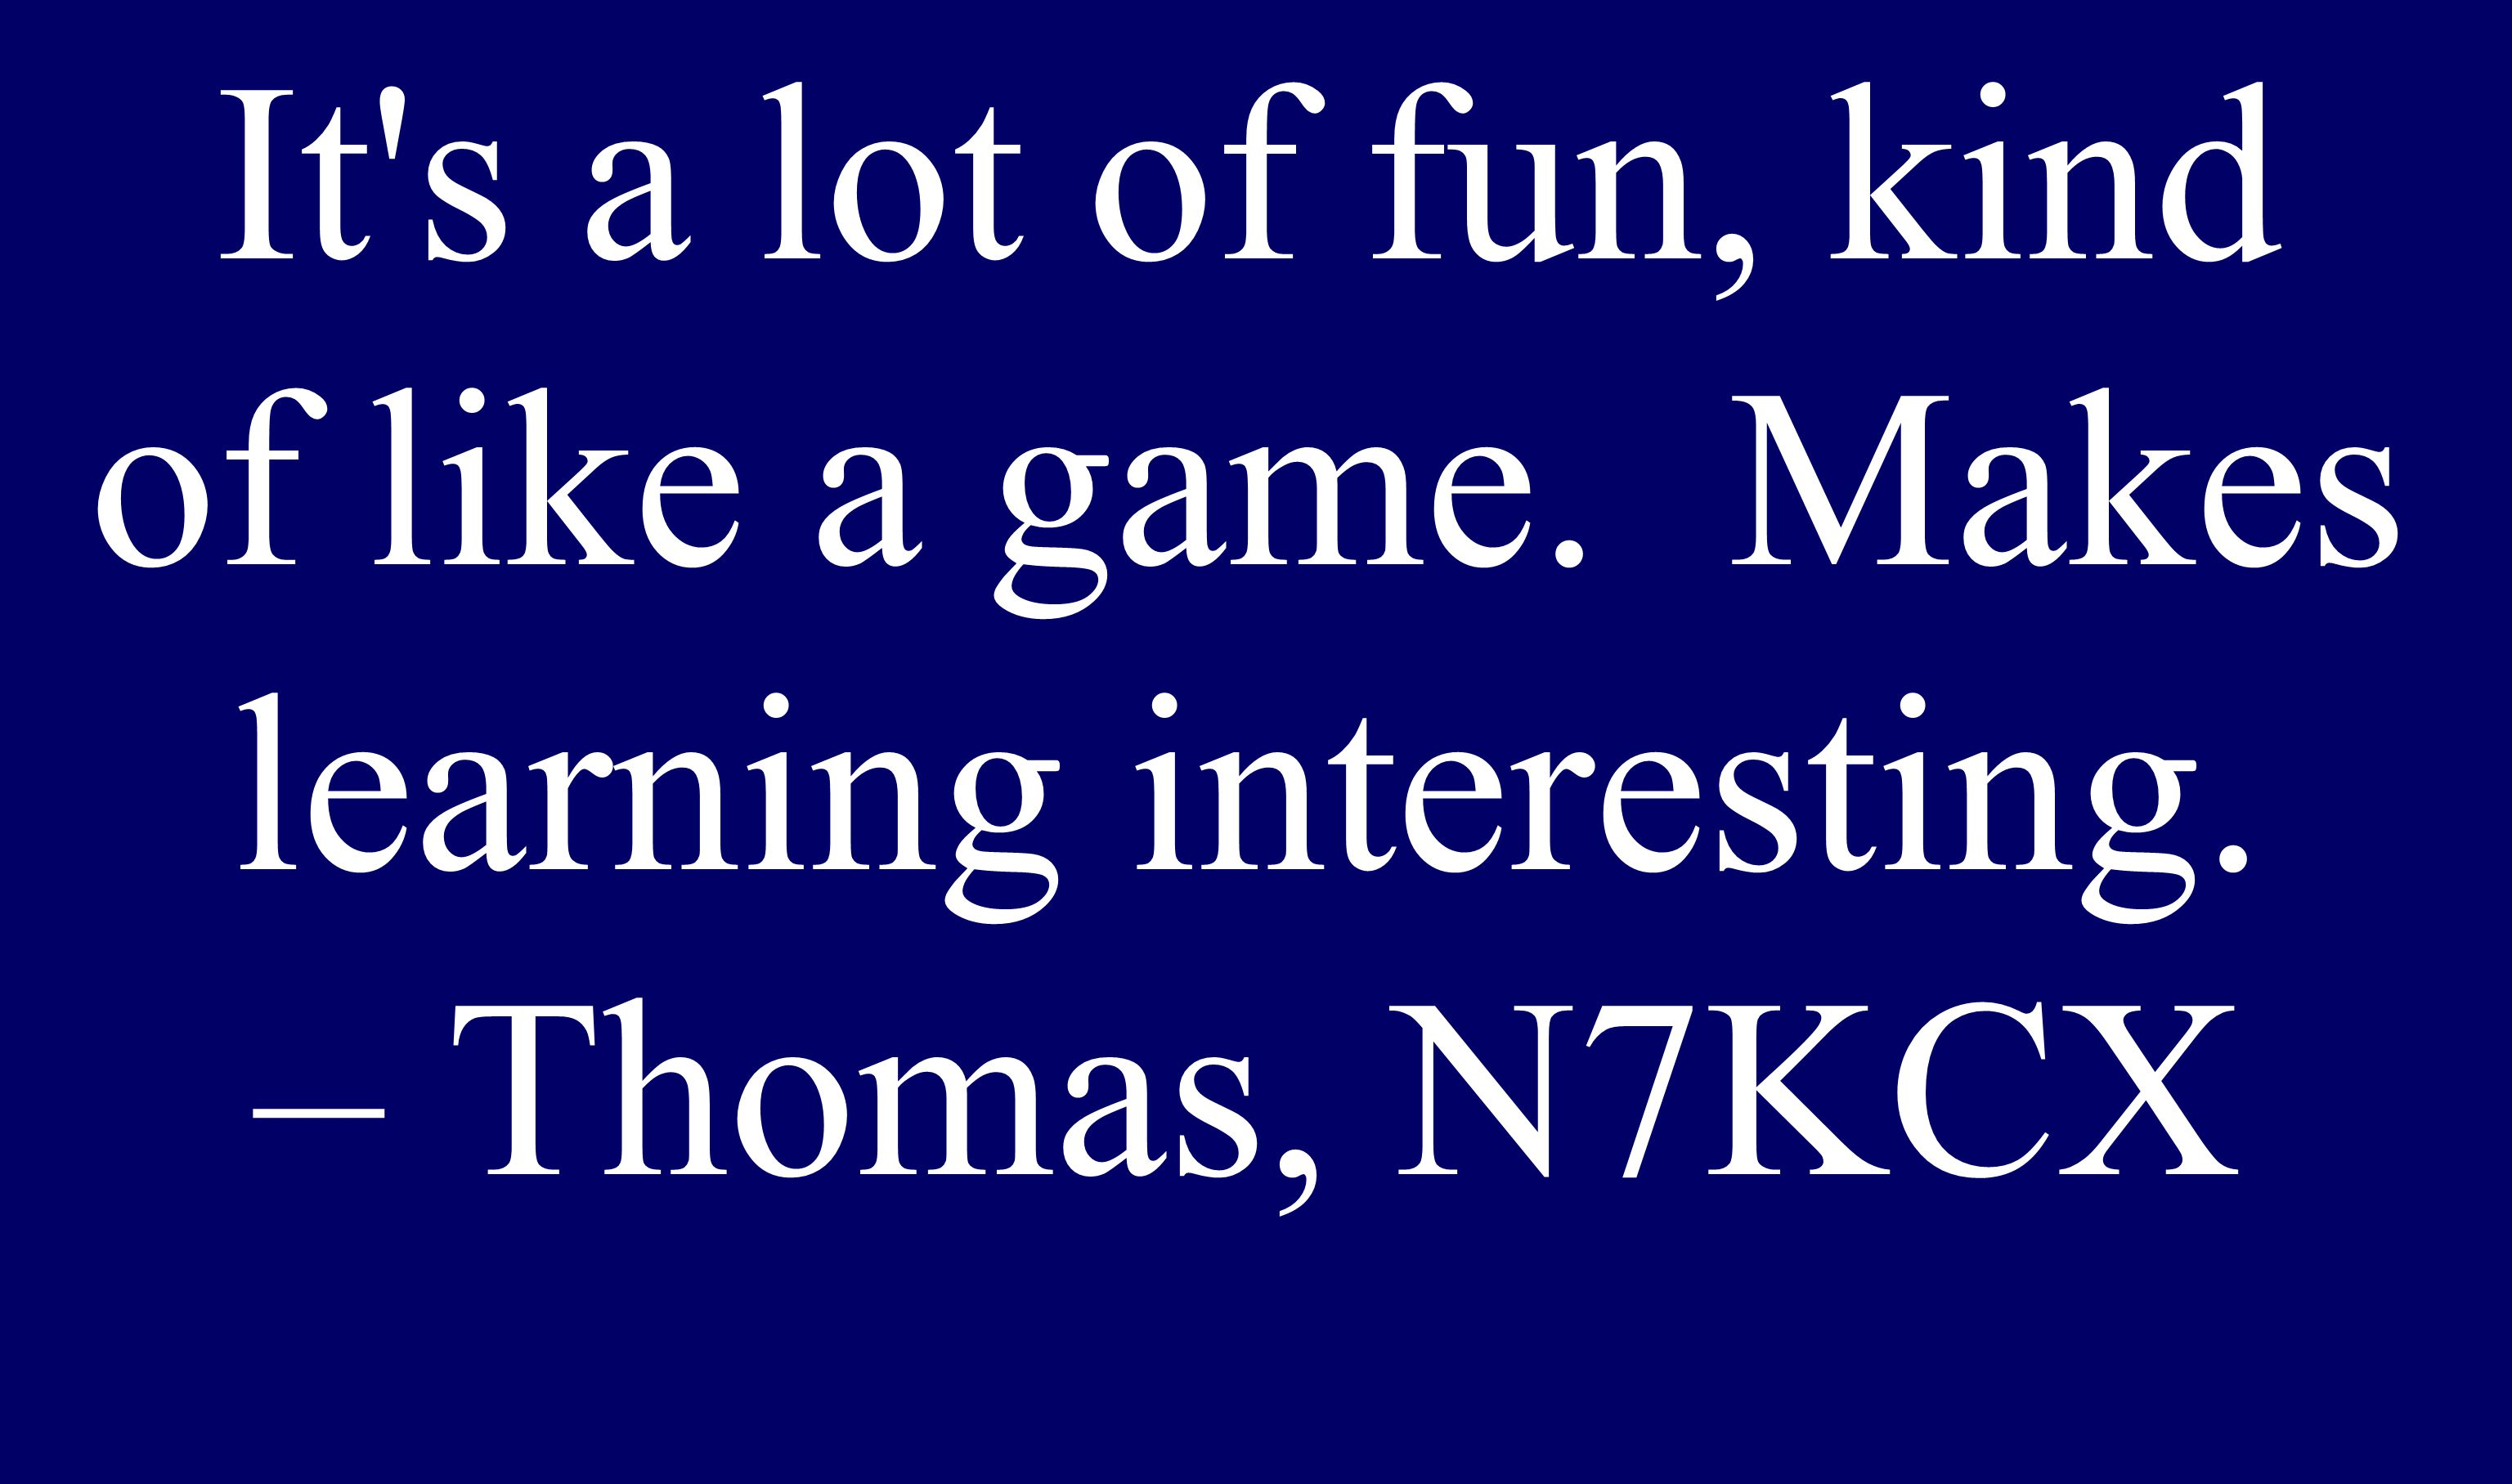 It s a lot of fun, kind of like a game. Makes learning interesting. – Thomas, N7KCX